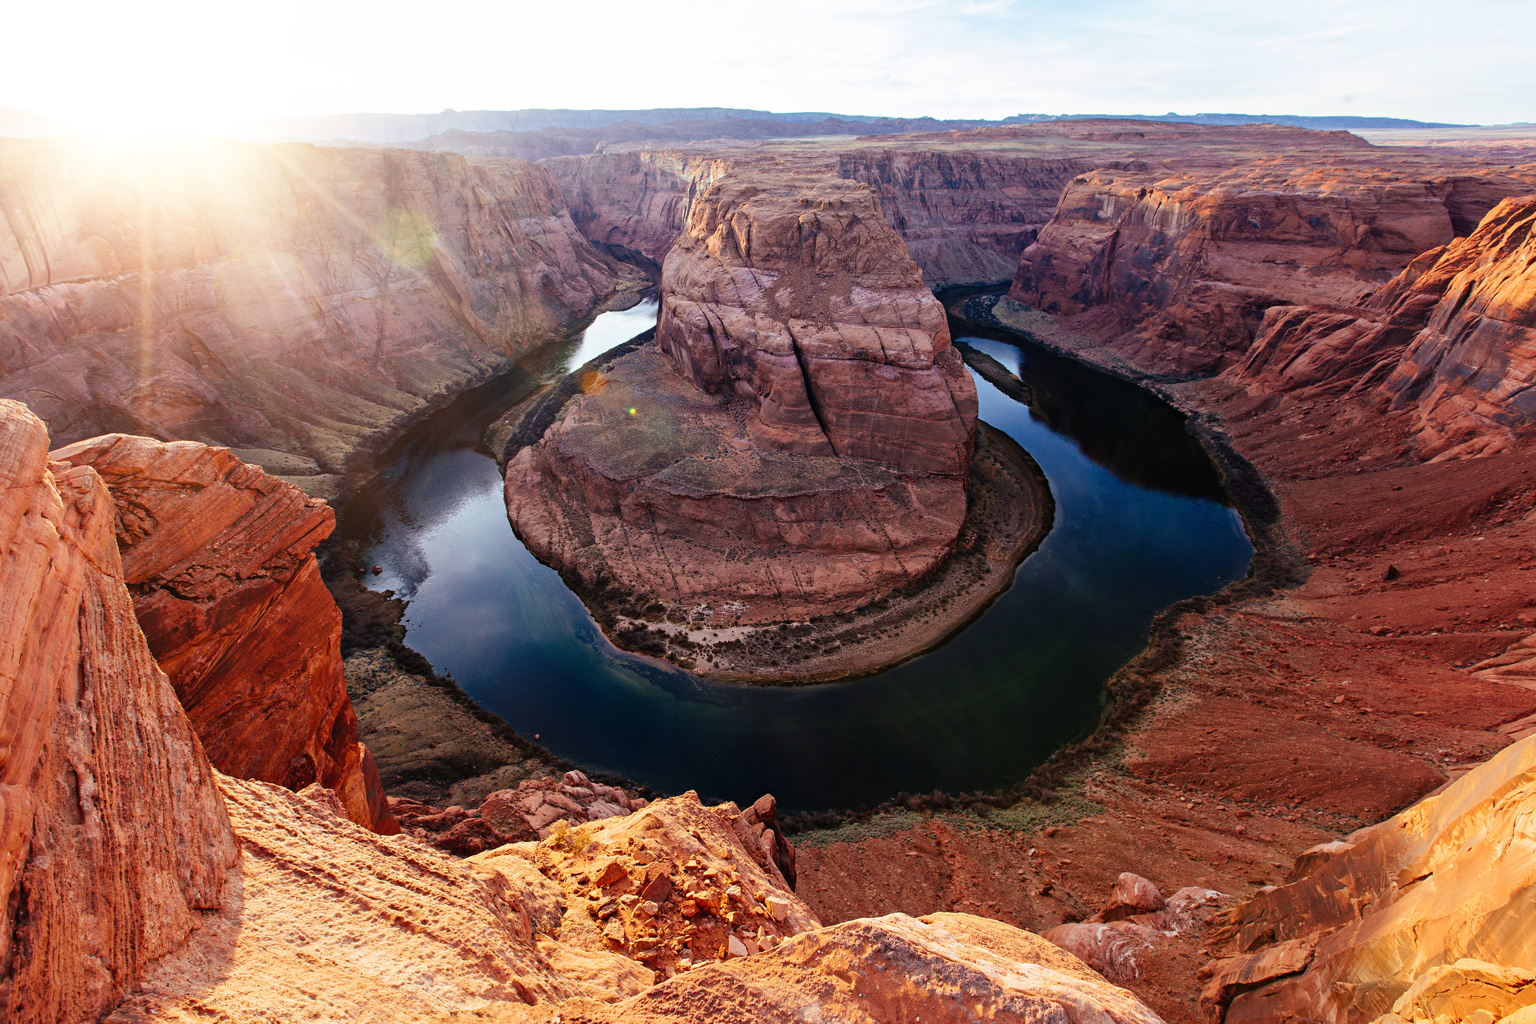 CindyGiovagnoli_Arizona_Horseshoe_Bend_Colorado_River_photography-001.jpg